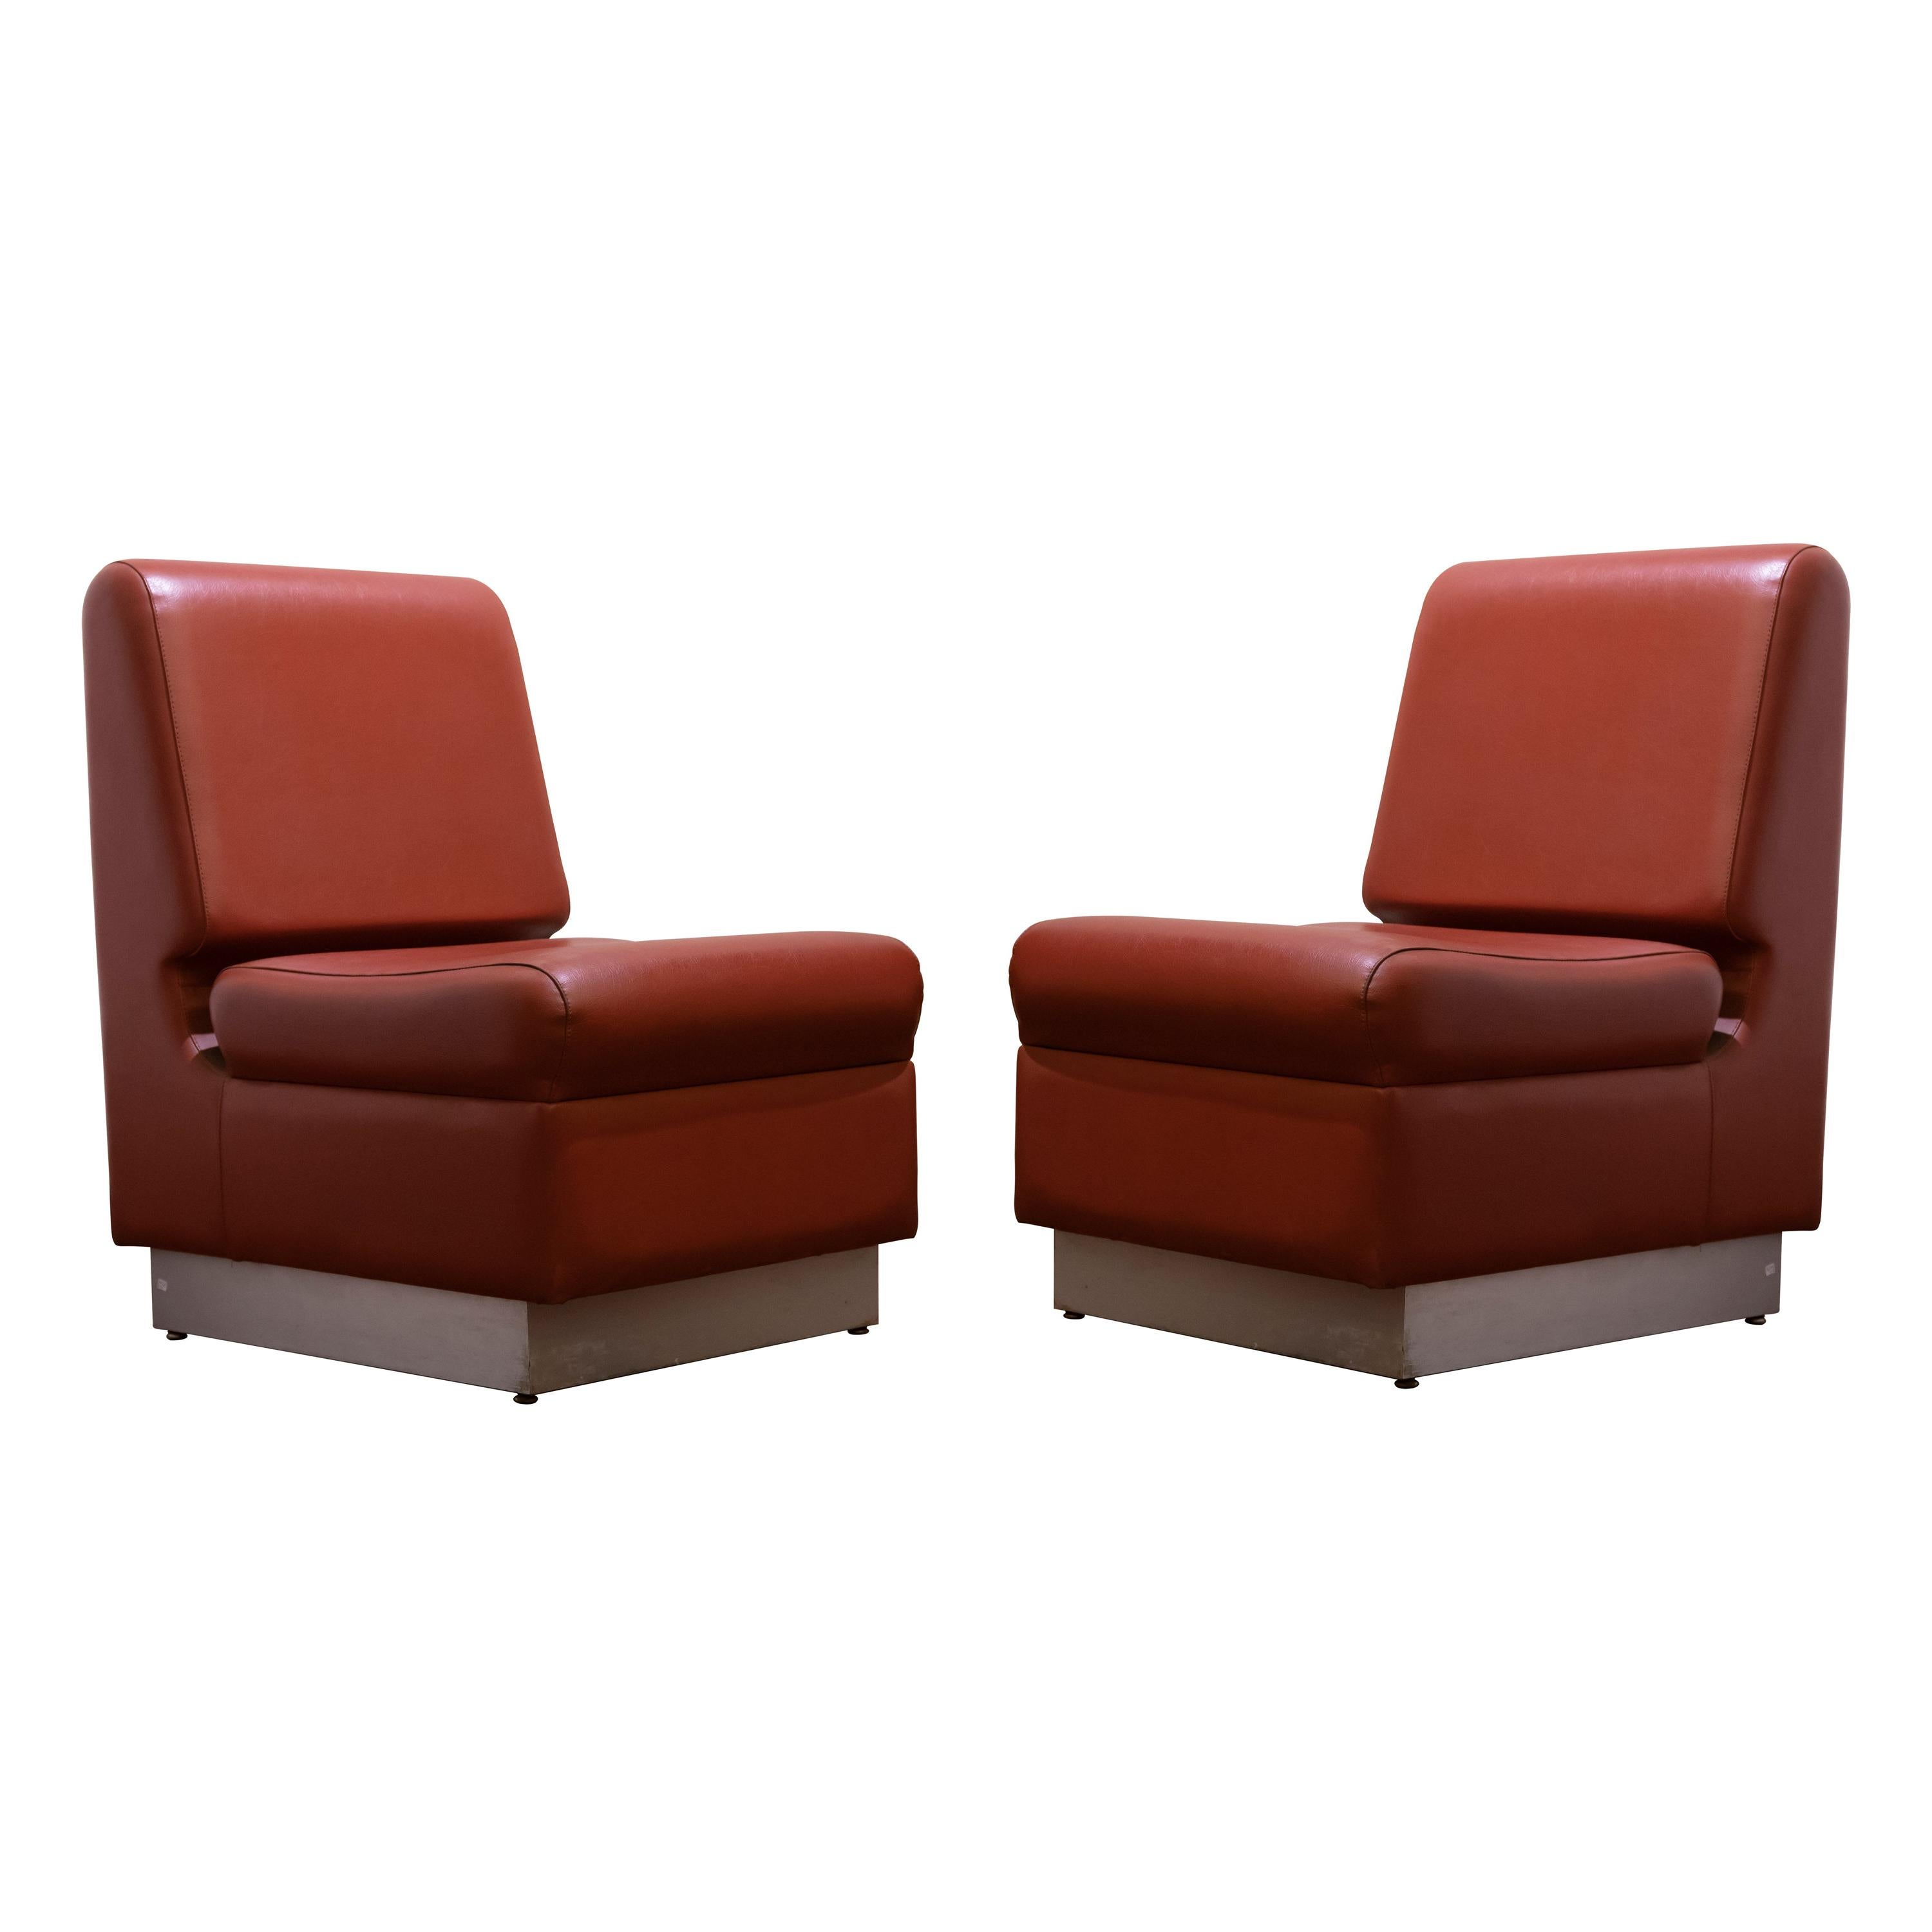 Pair of Vintage Armchairs, Italian Production, 1960s